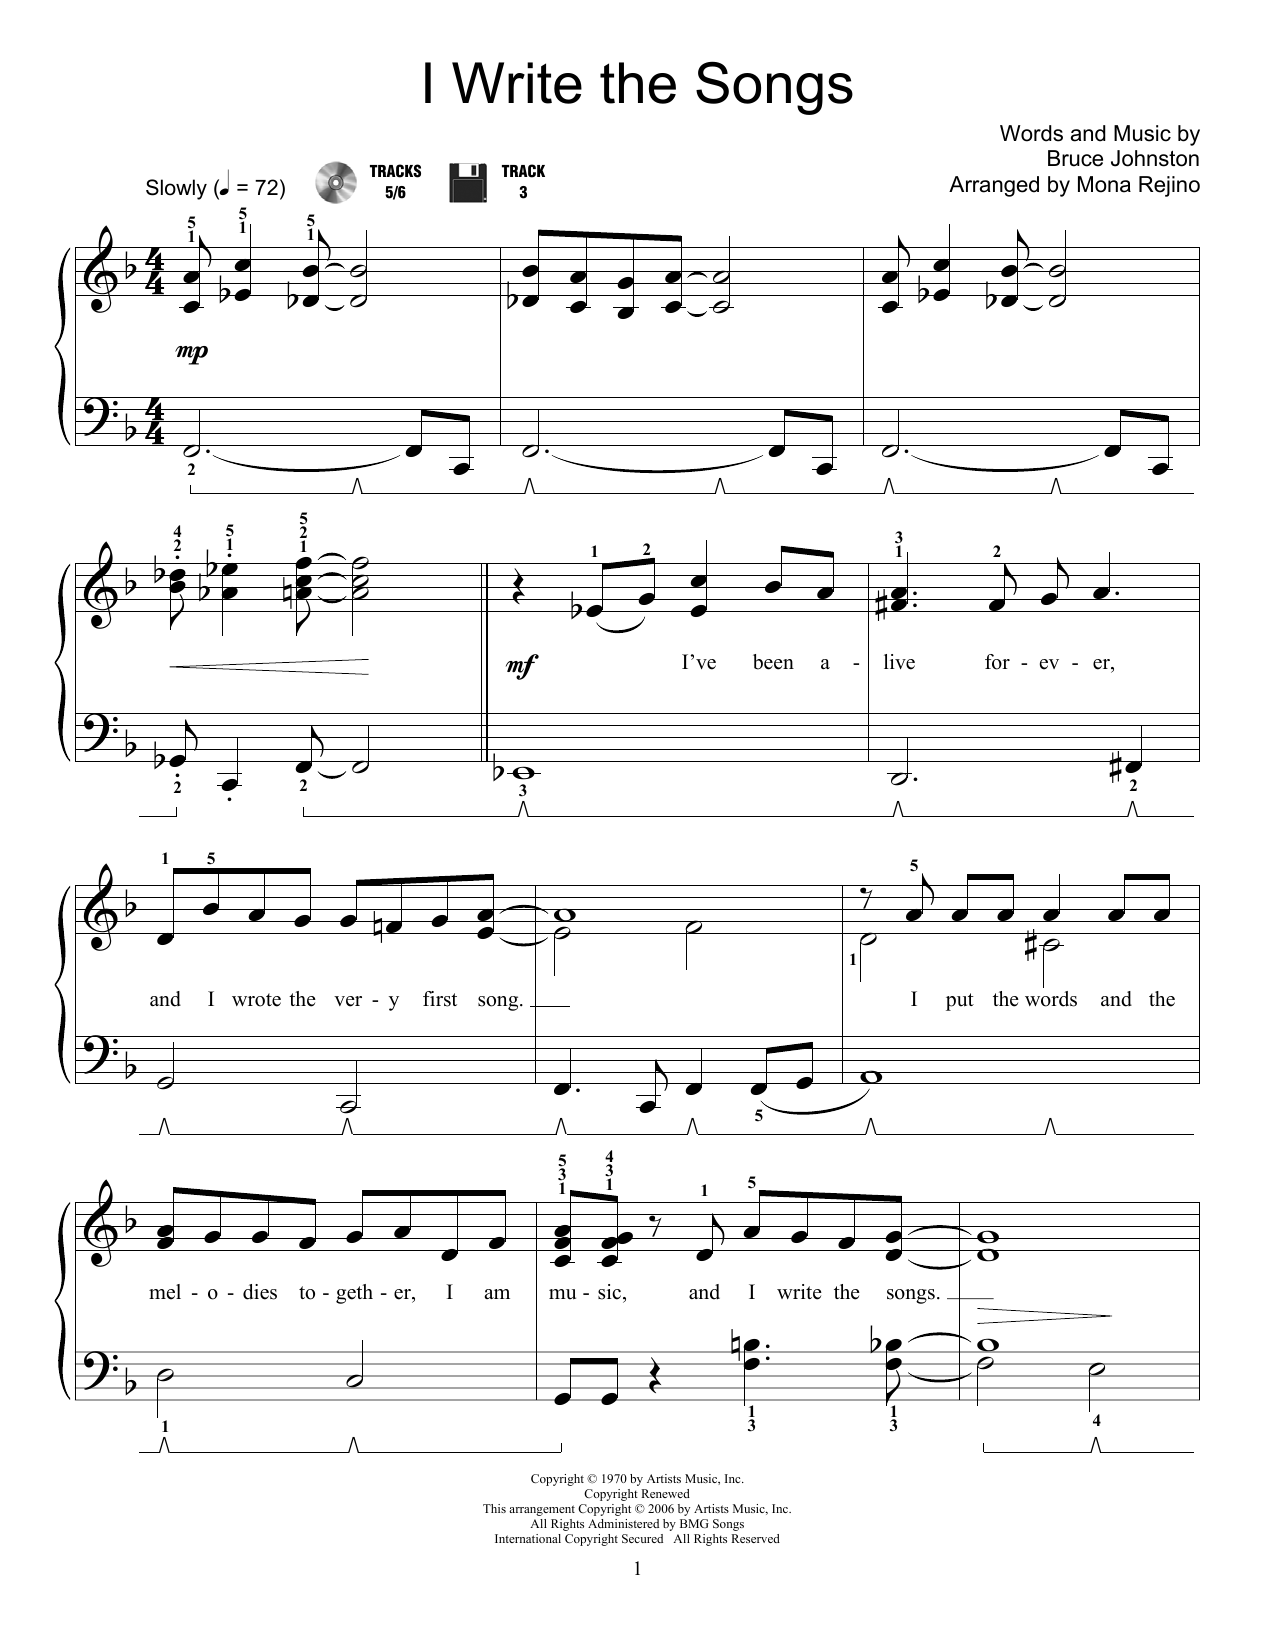 Mona Rejino I Write The Songs sheet music notes and chords - download printable PDF.